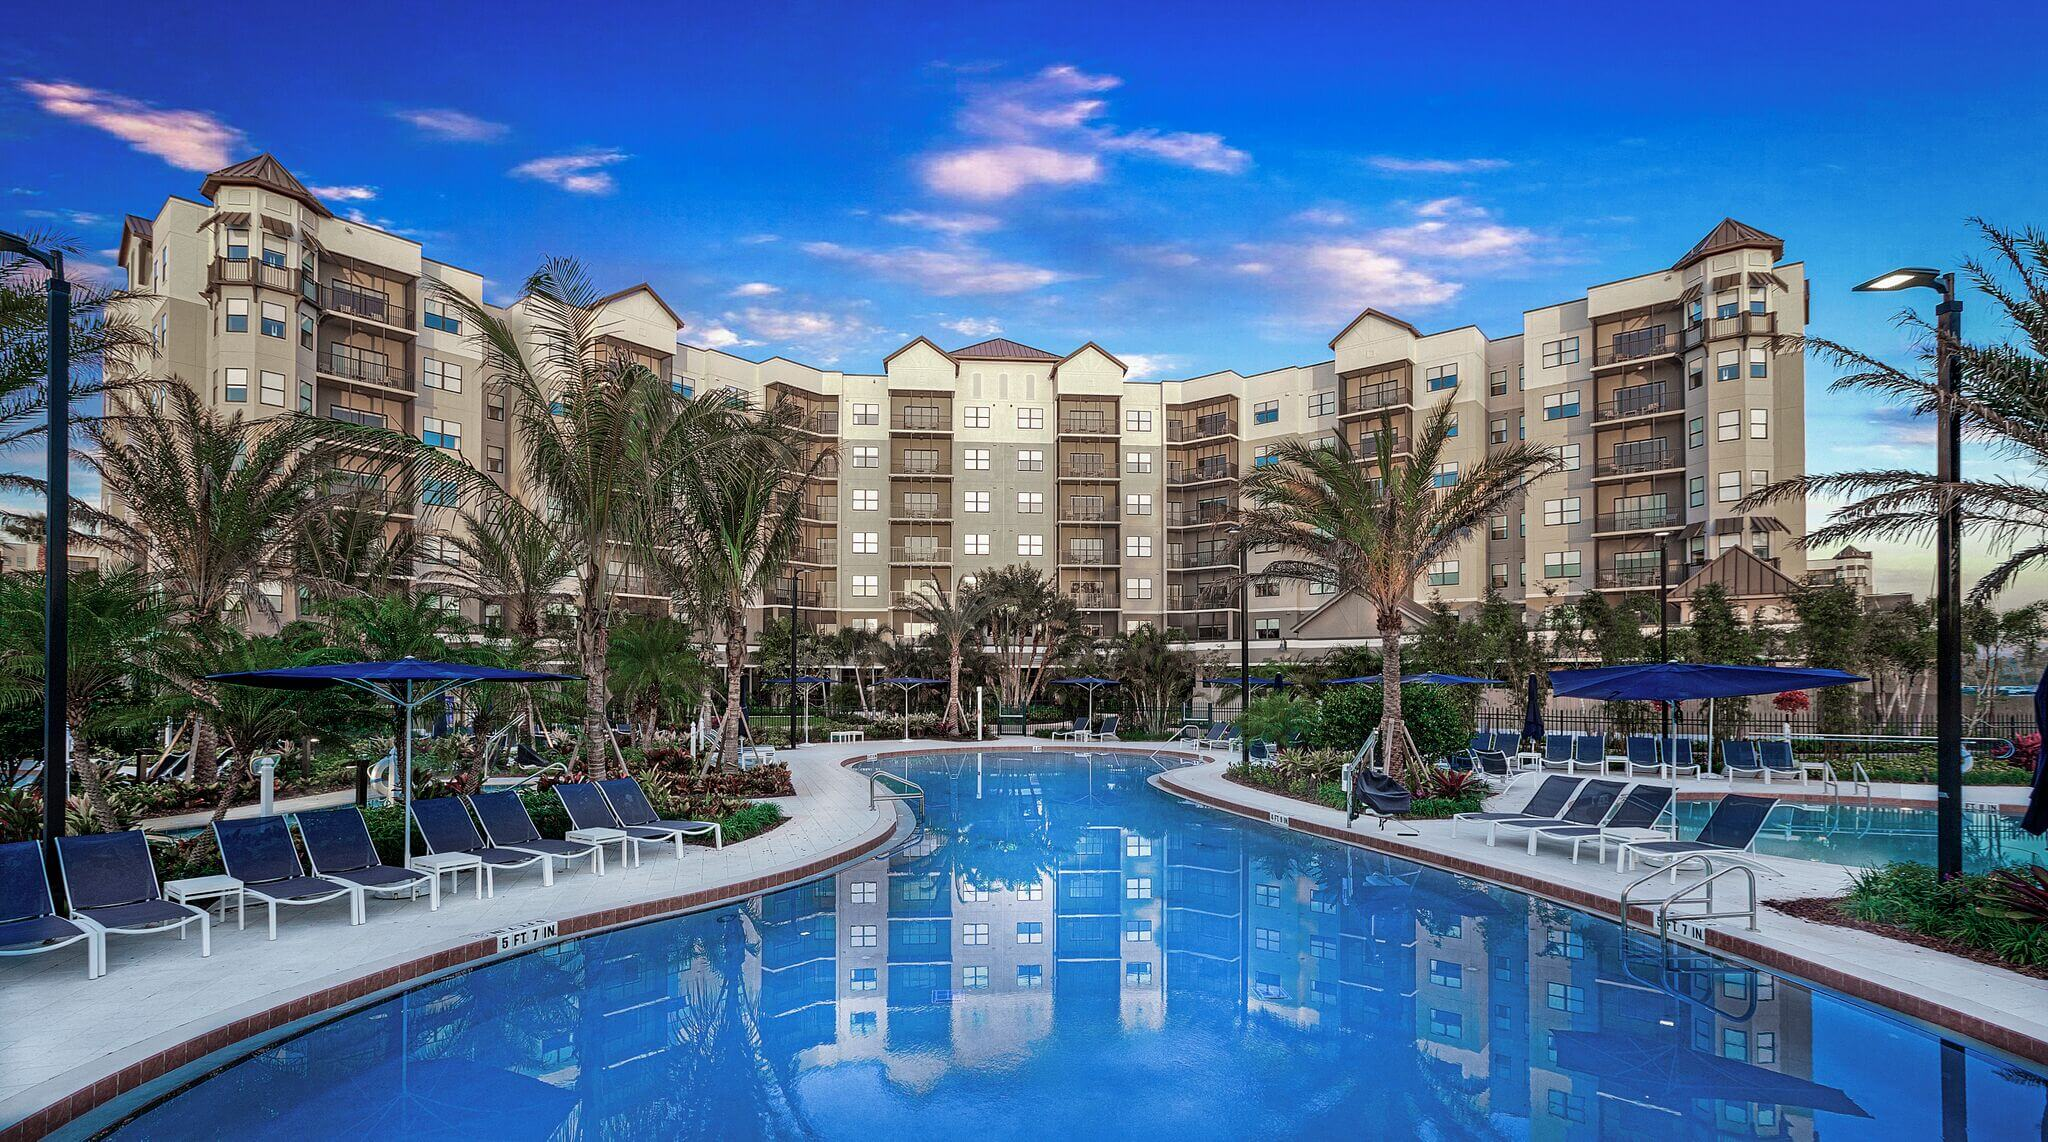 Orlando, FL Condo Hotel Resort & Spa